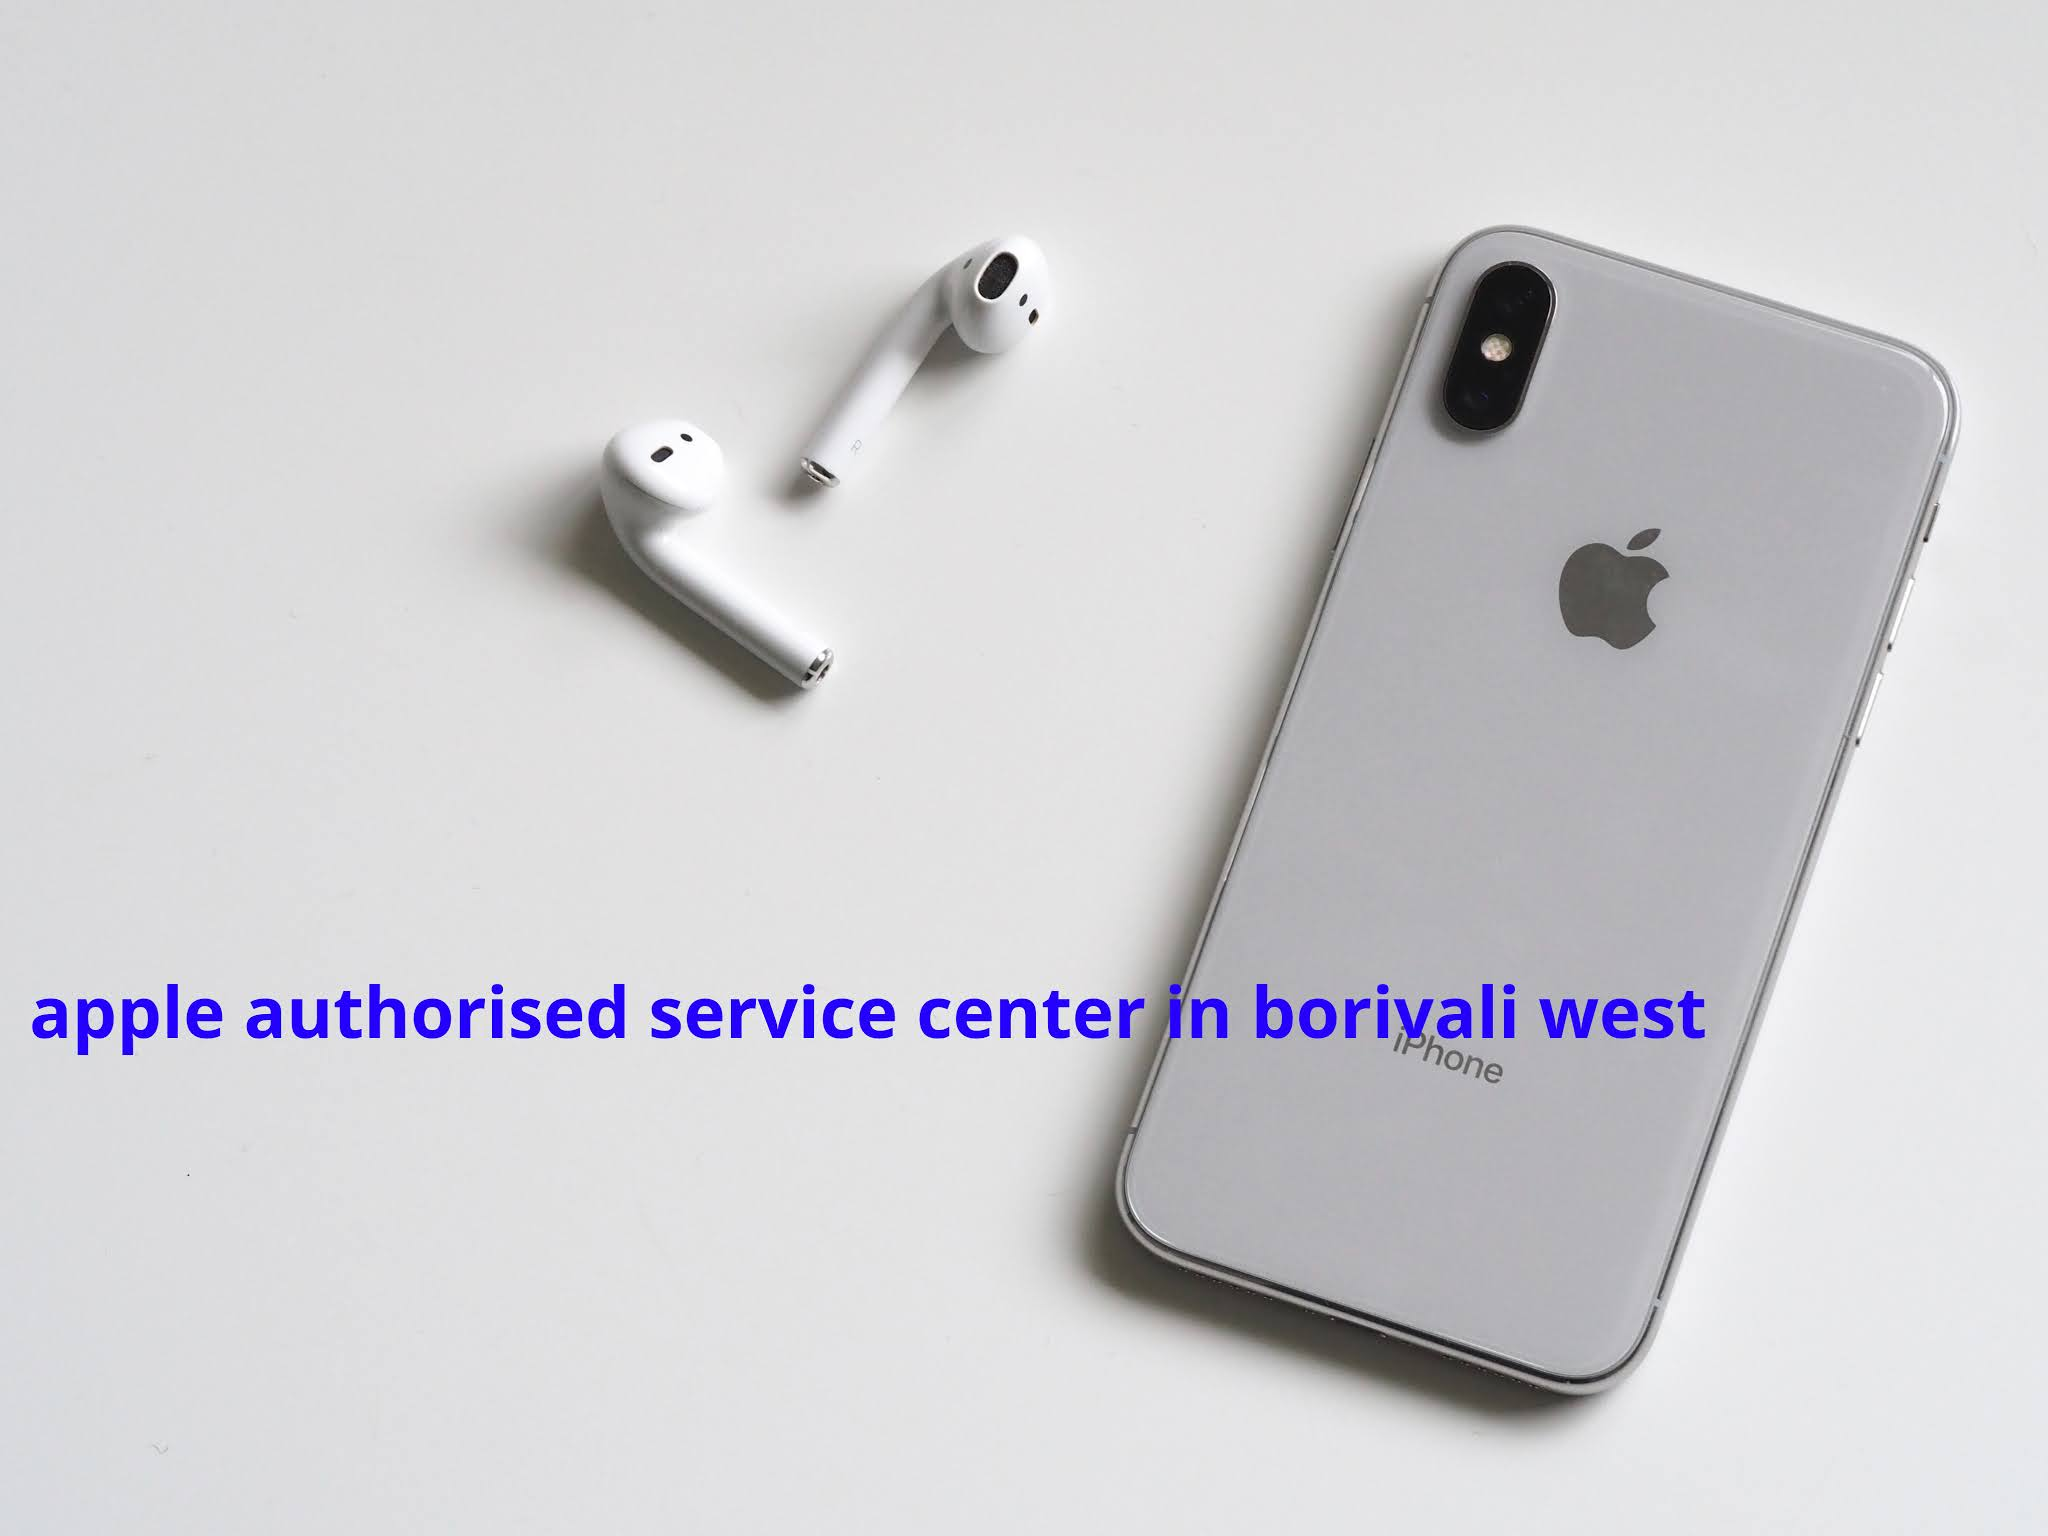 apple authorised service center